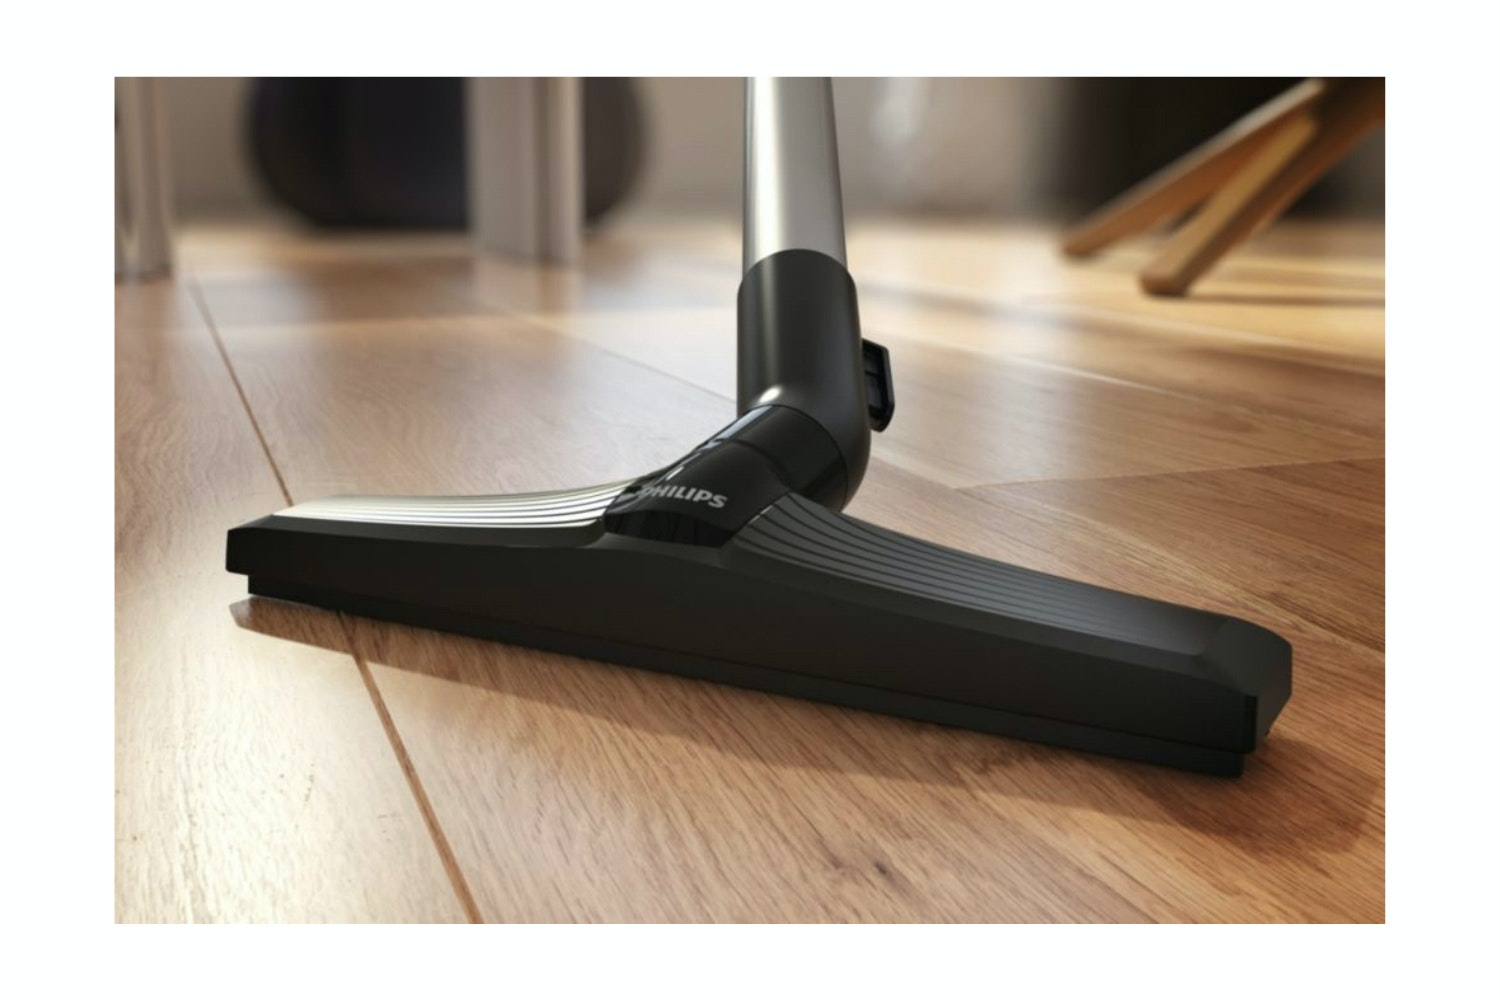 Philips PowerLife Vacuum cleaner